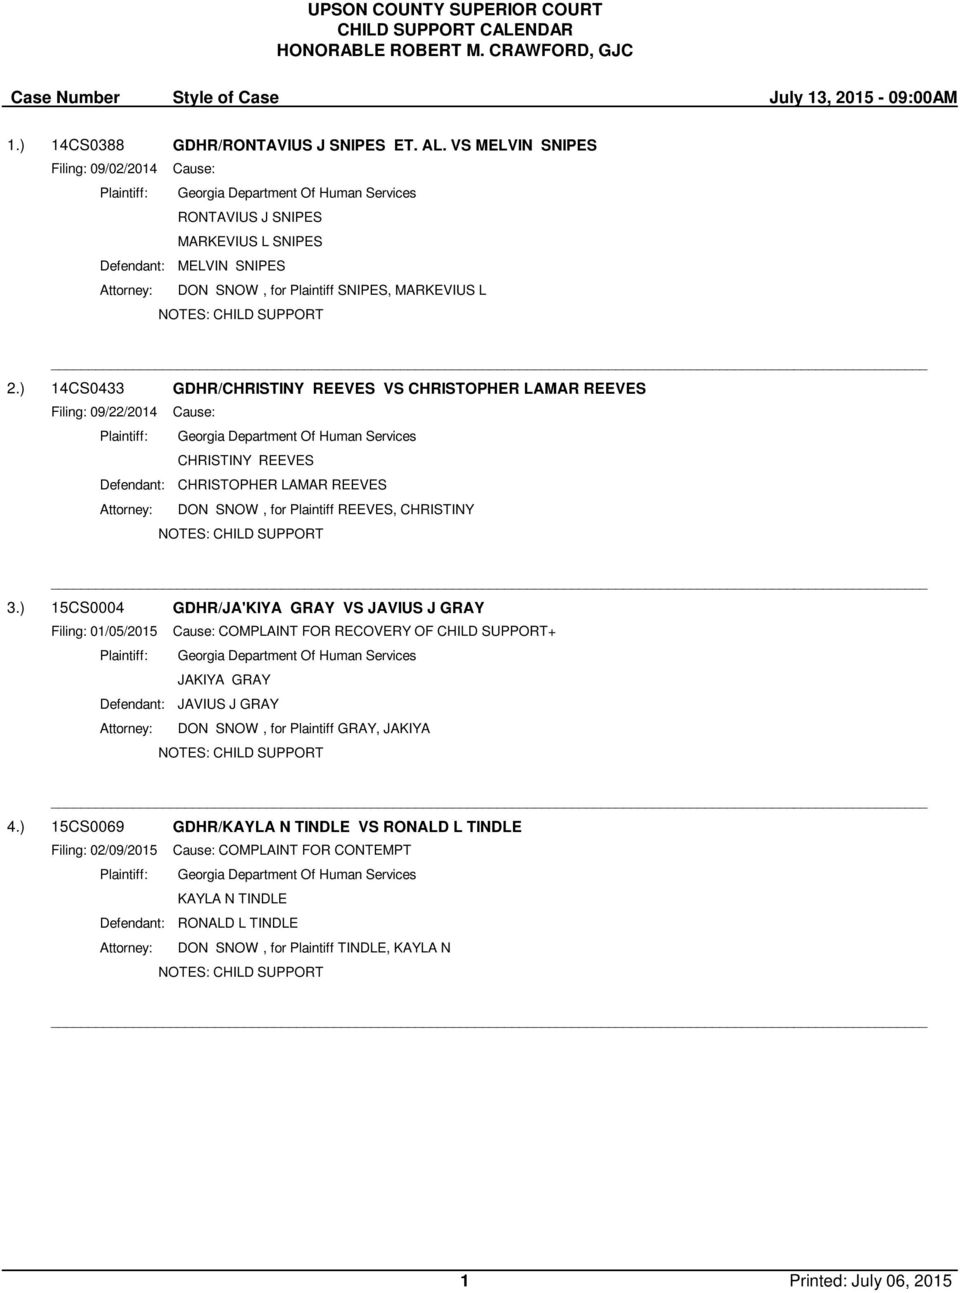 ) 14CS0433 GDHR/CHRISTINY REEVES VS CHRISTOPHER LAMAR REEVES Filing: 09/22/2014 Cause: CHRISTINY REEVES Defendant: CHRISTOPHER LAMAR REEVES Attorney: DON SNOW, for Plaintiff REEVES, CHRISTINY 3.